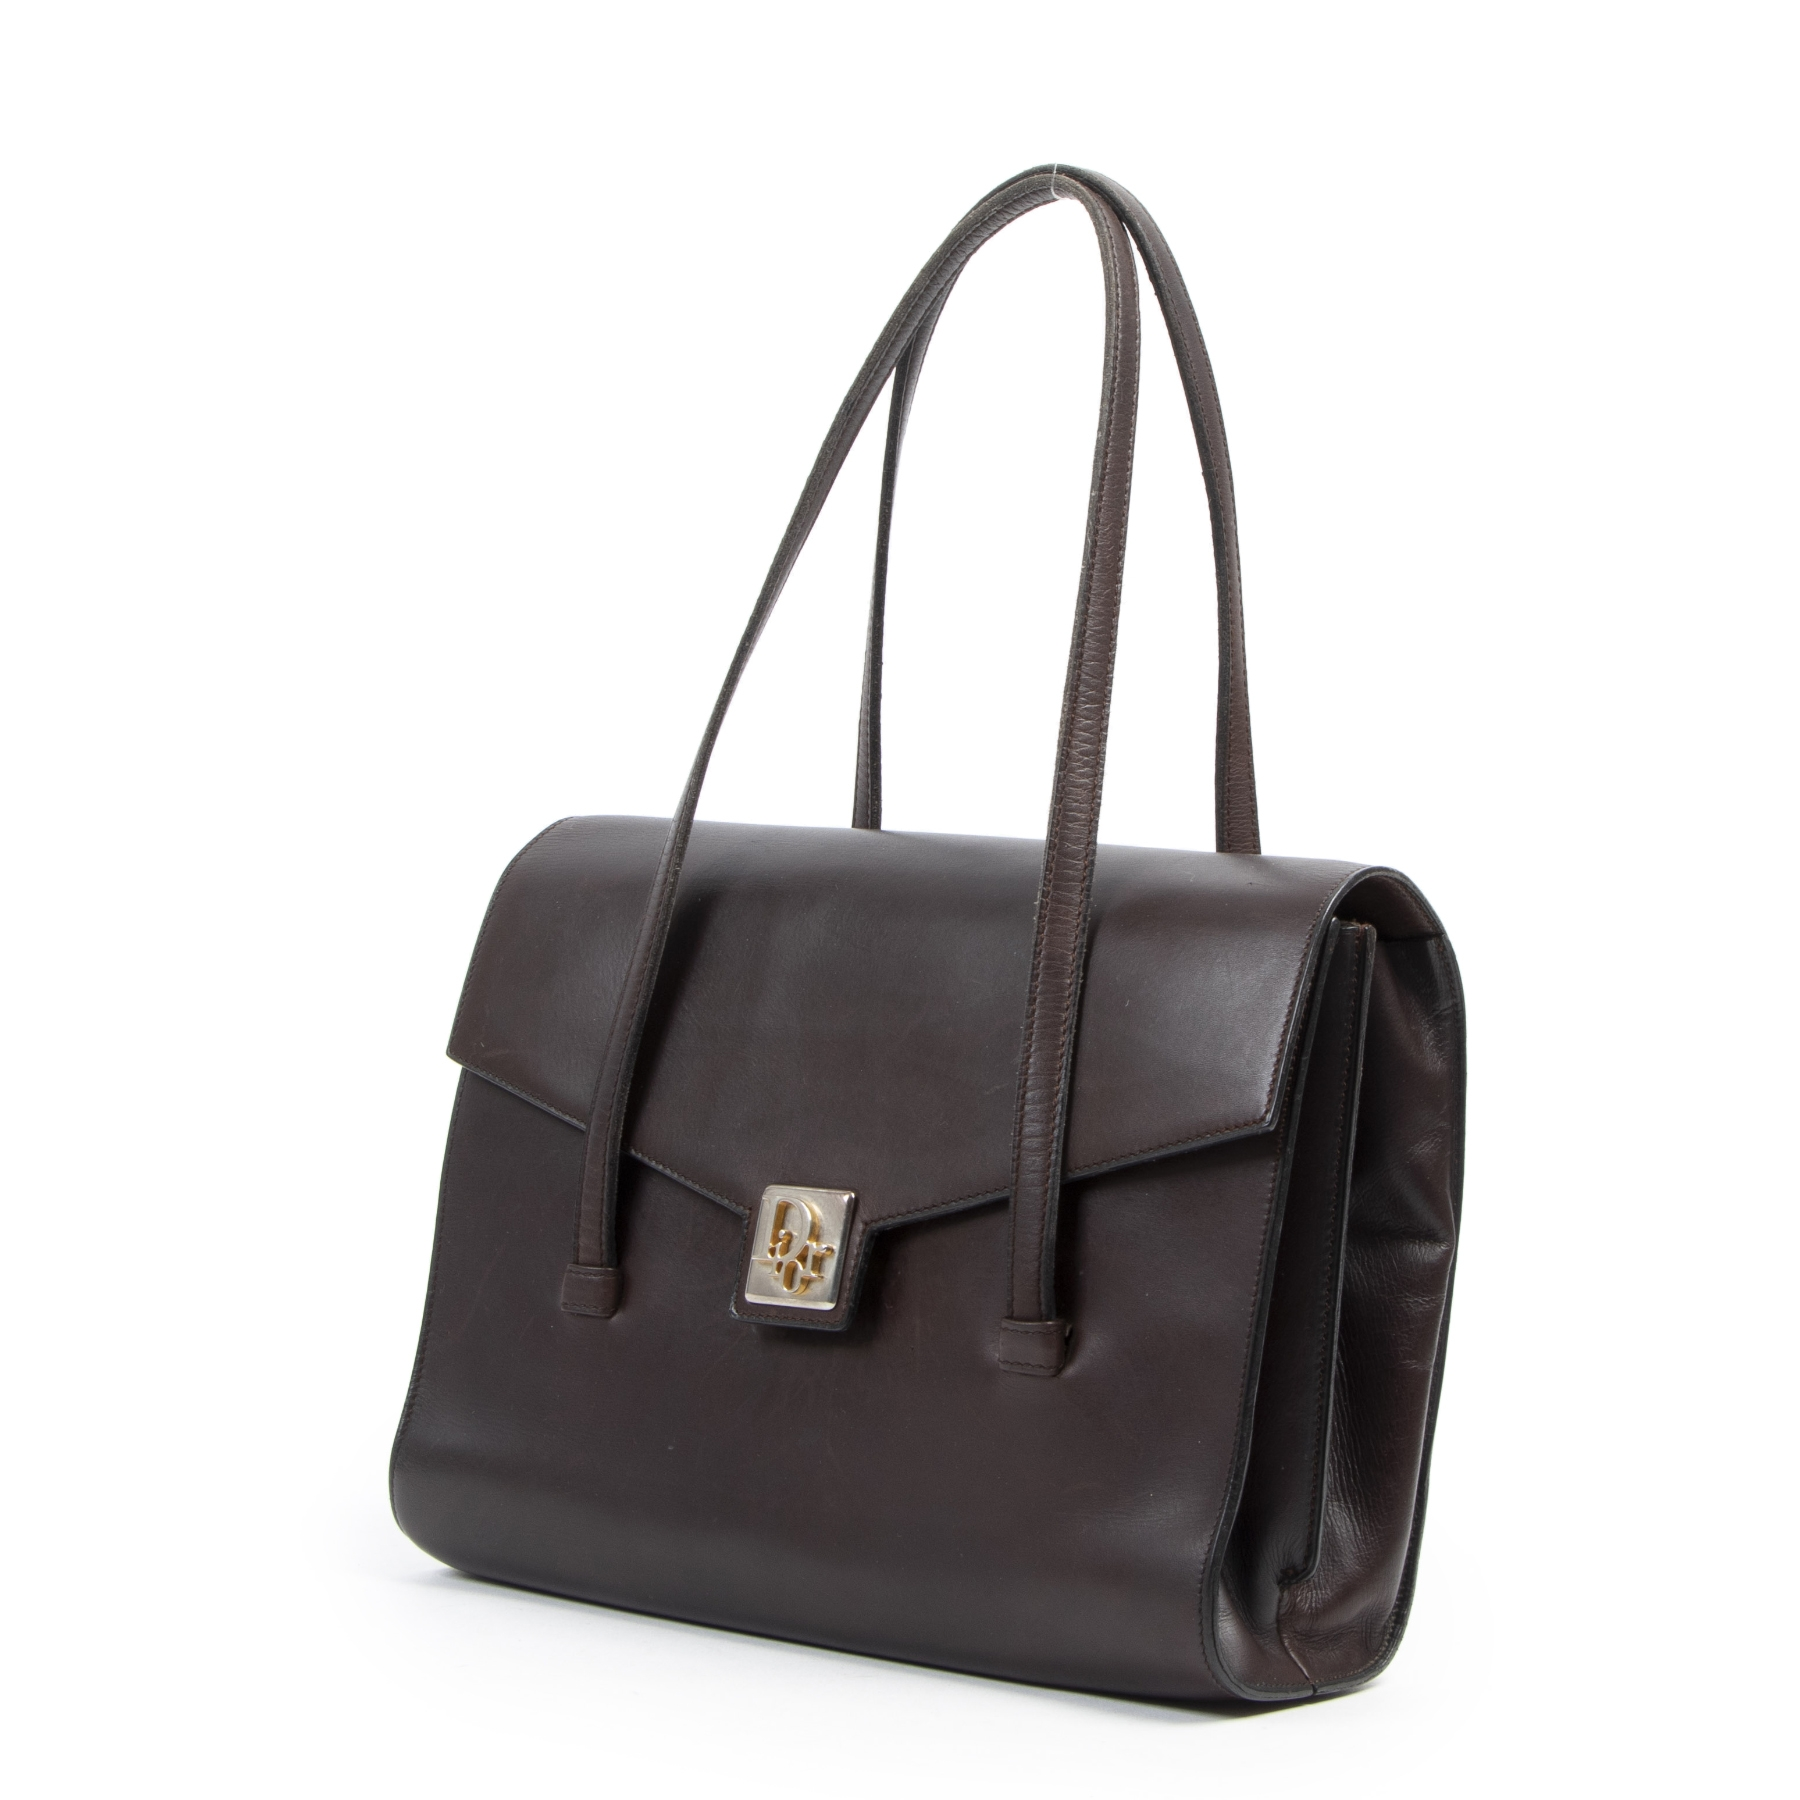 acheter en ligne seconde main Dior Brown Box Calf Top Handle Bag